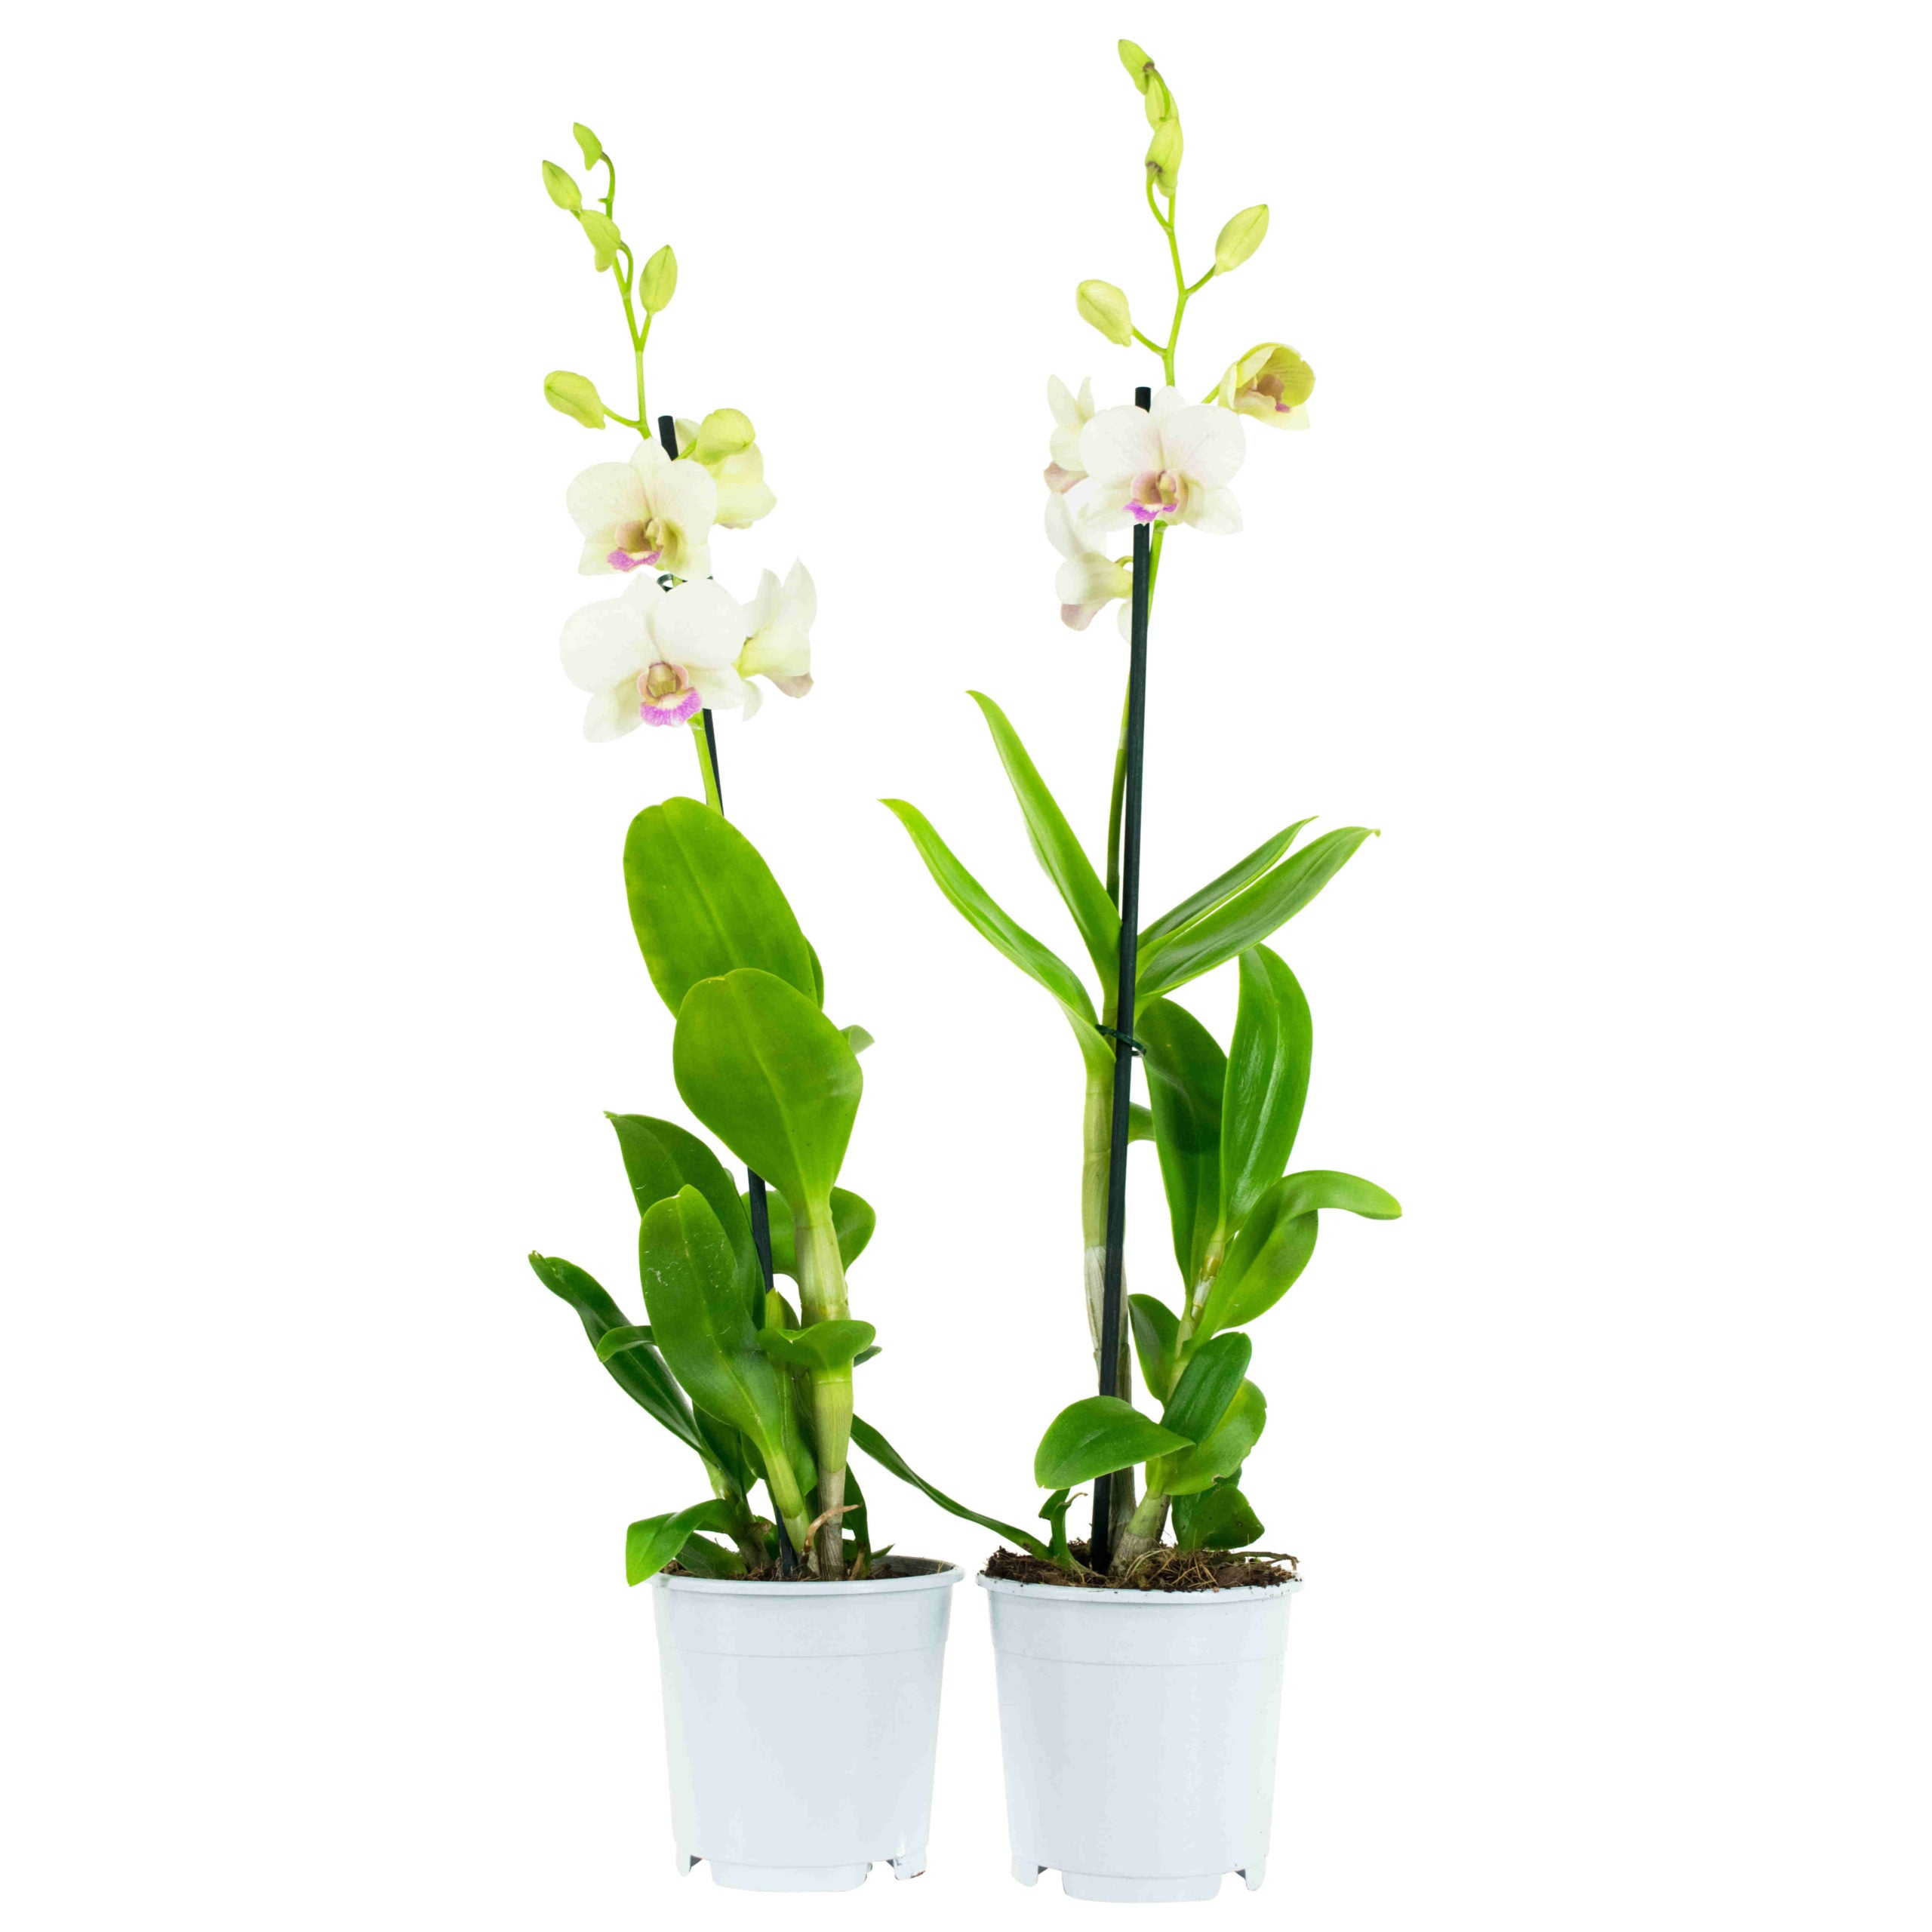 Choice of Green - Dendrobium Sa-nook Snow Jade - Hoogte 55 cm - Diameter pot 11 cm